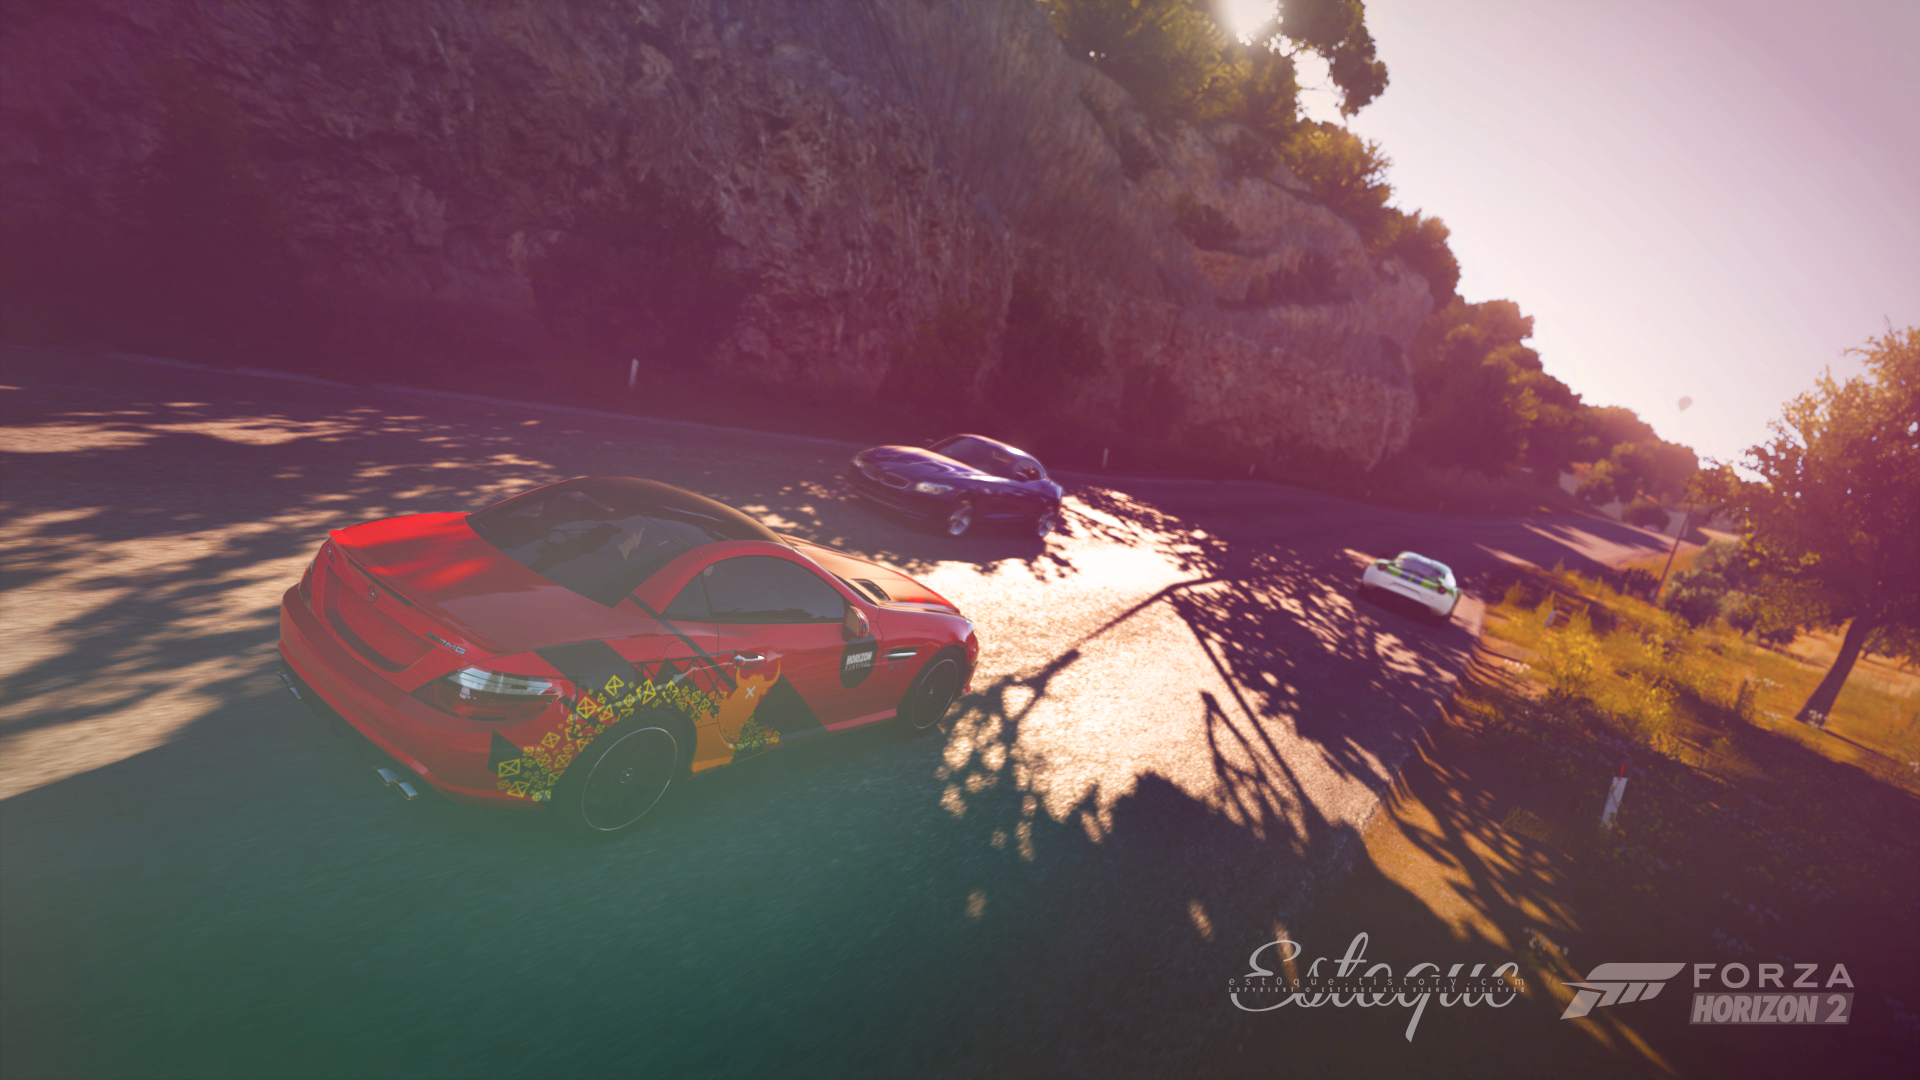 Sunday Morning forza horizon 2